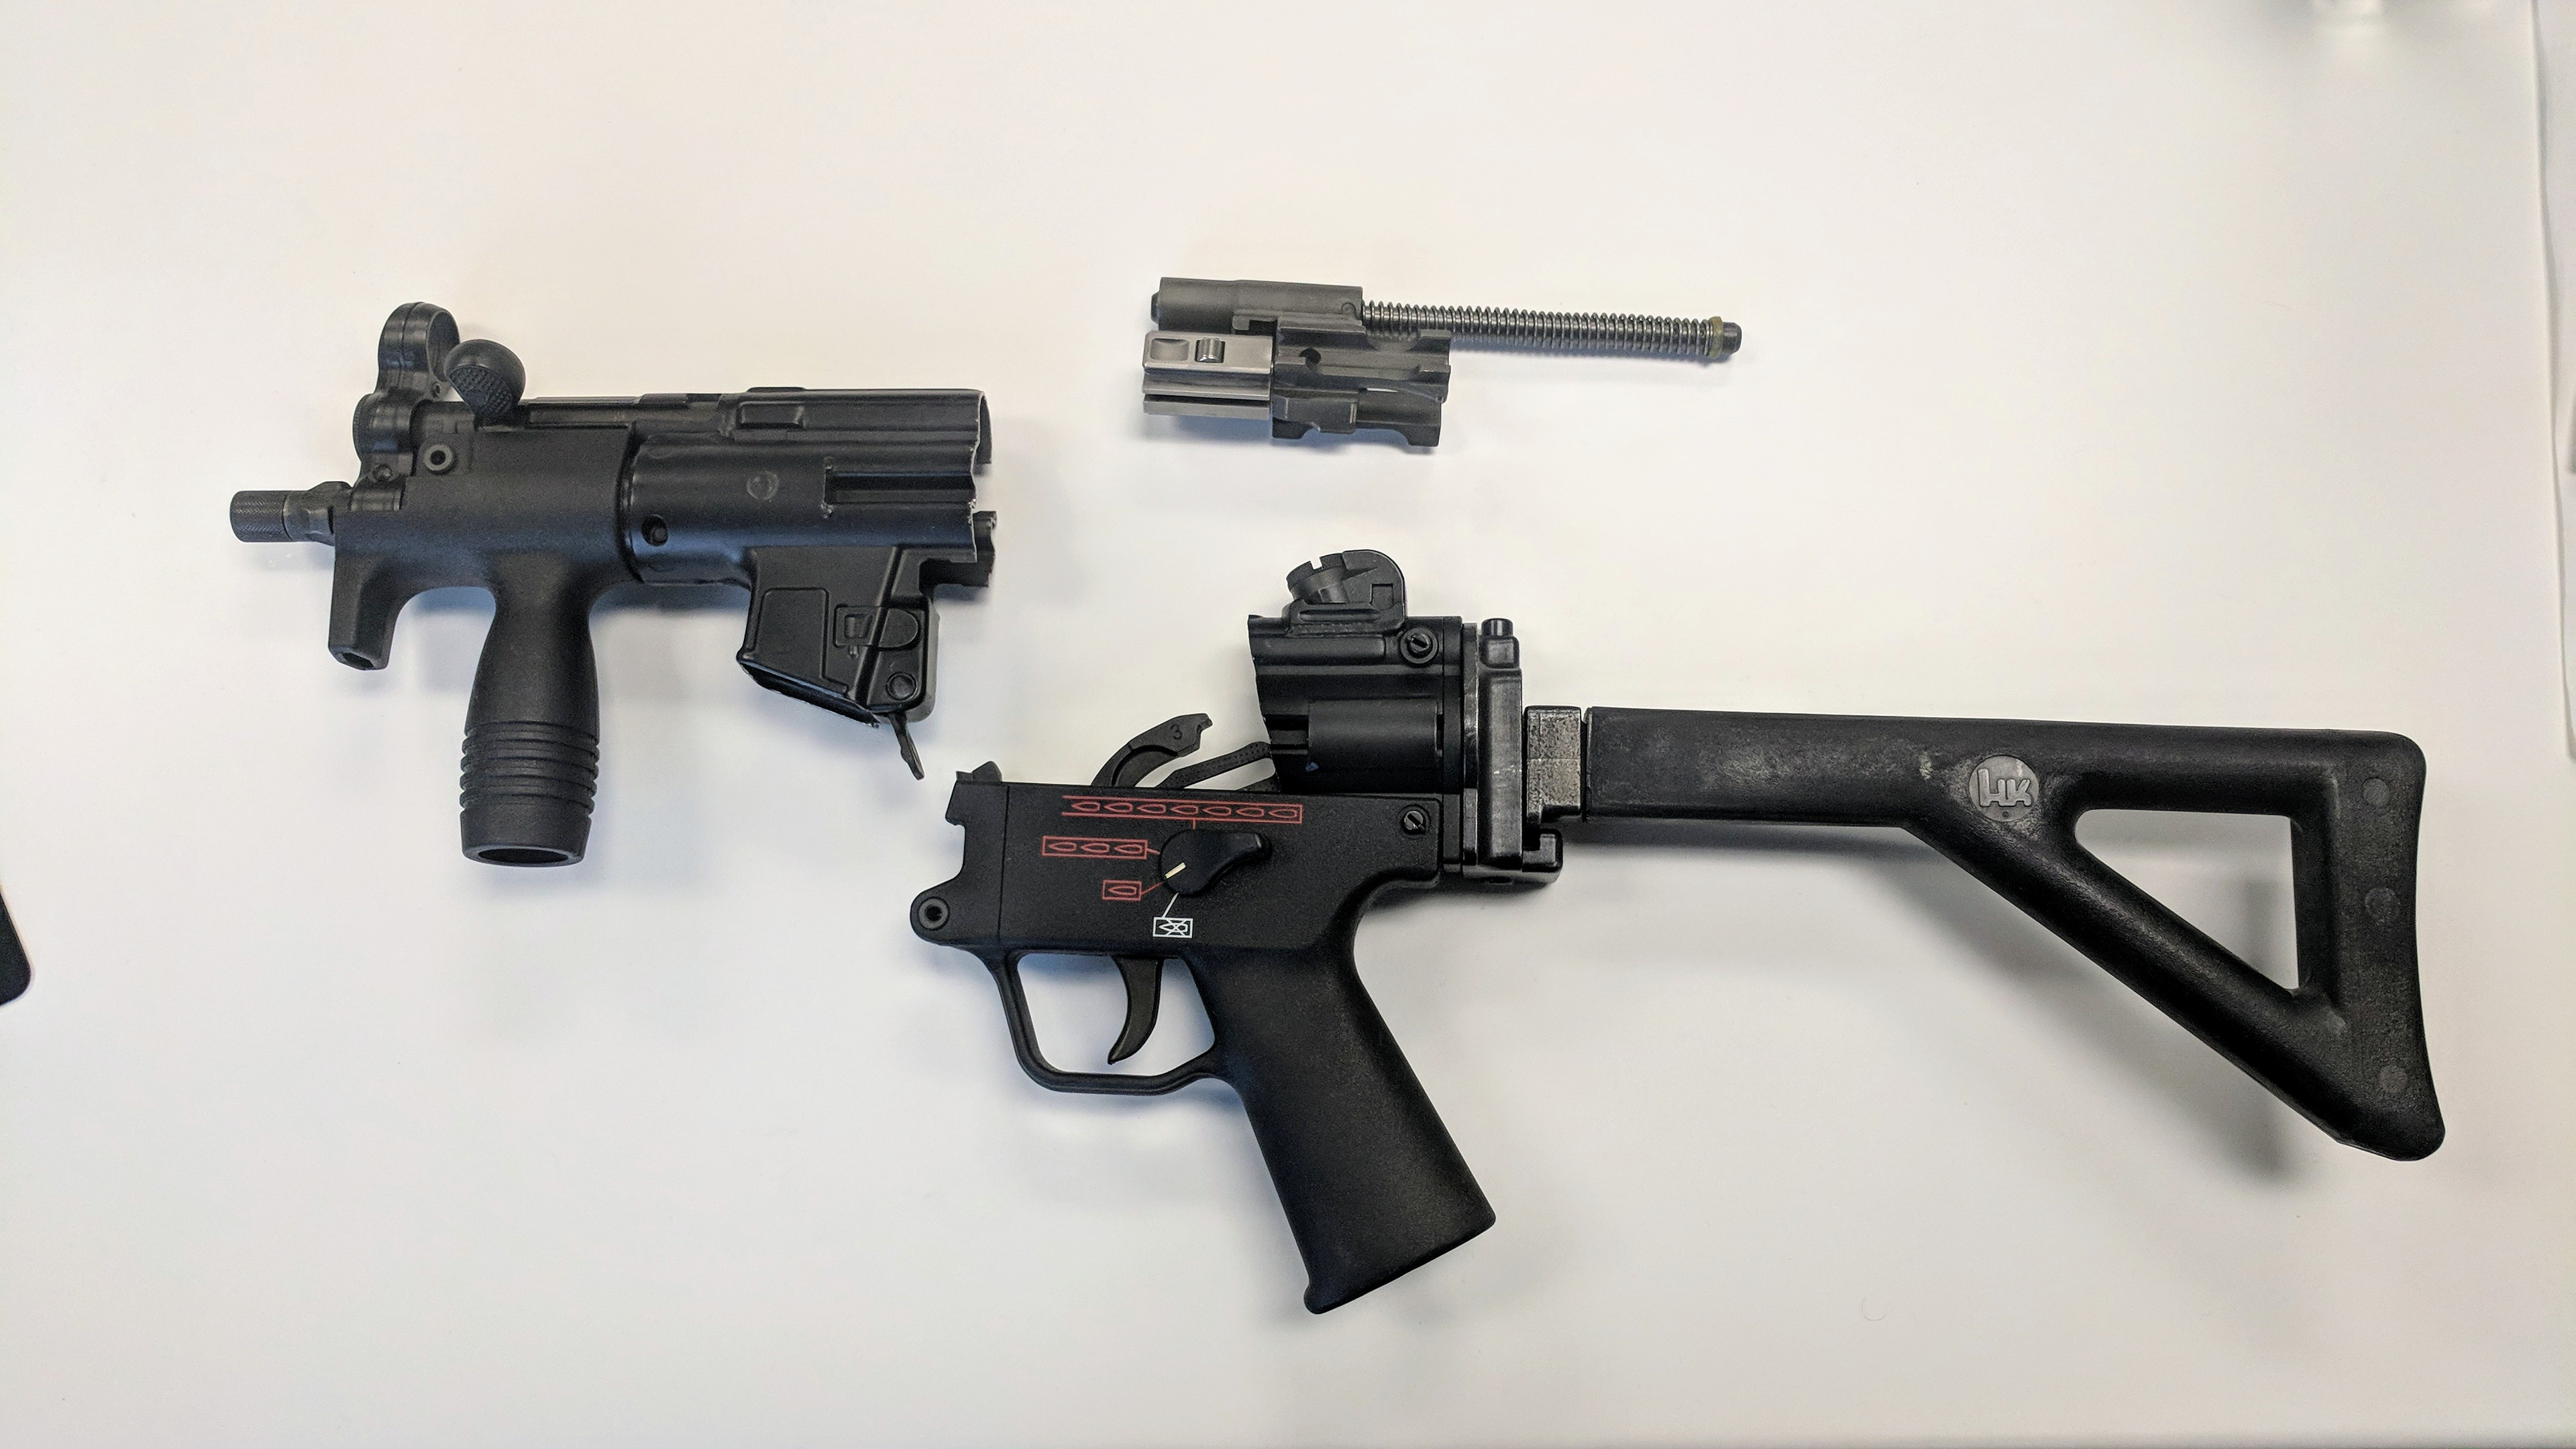 WTS: HK SP89 and complete demilled MP5k- PDW kit W/ LSC k Flat